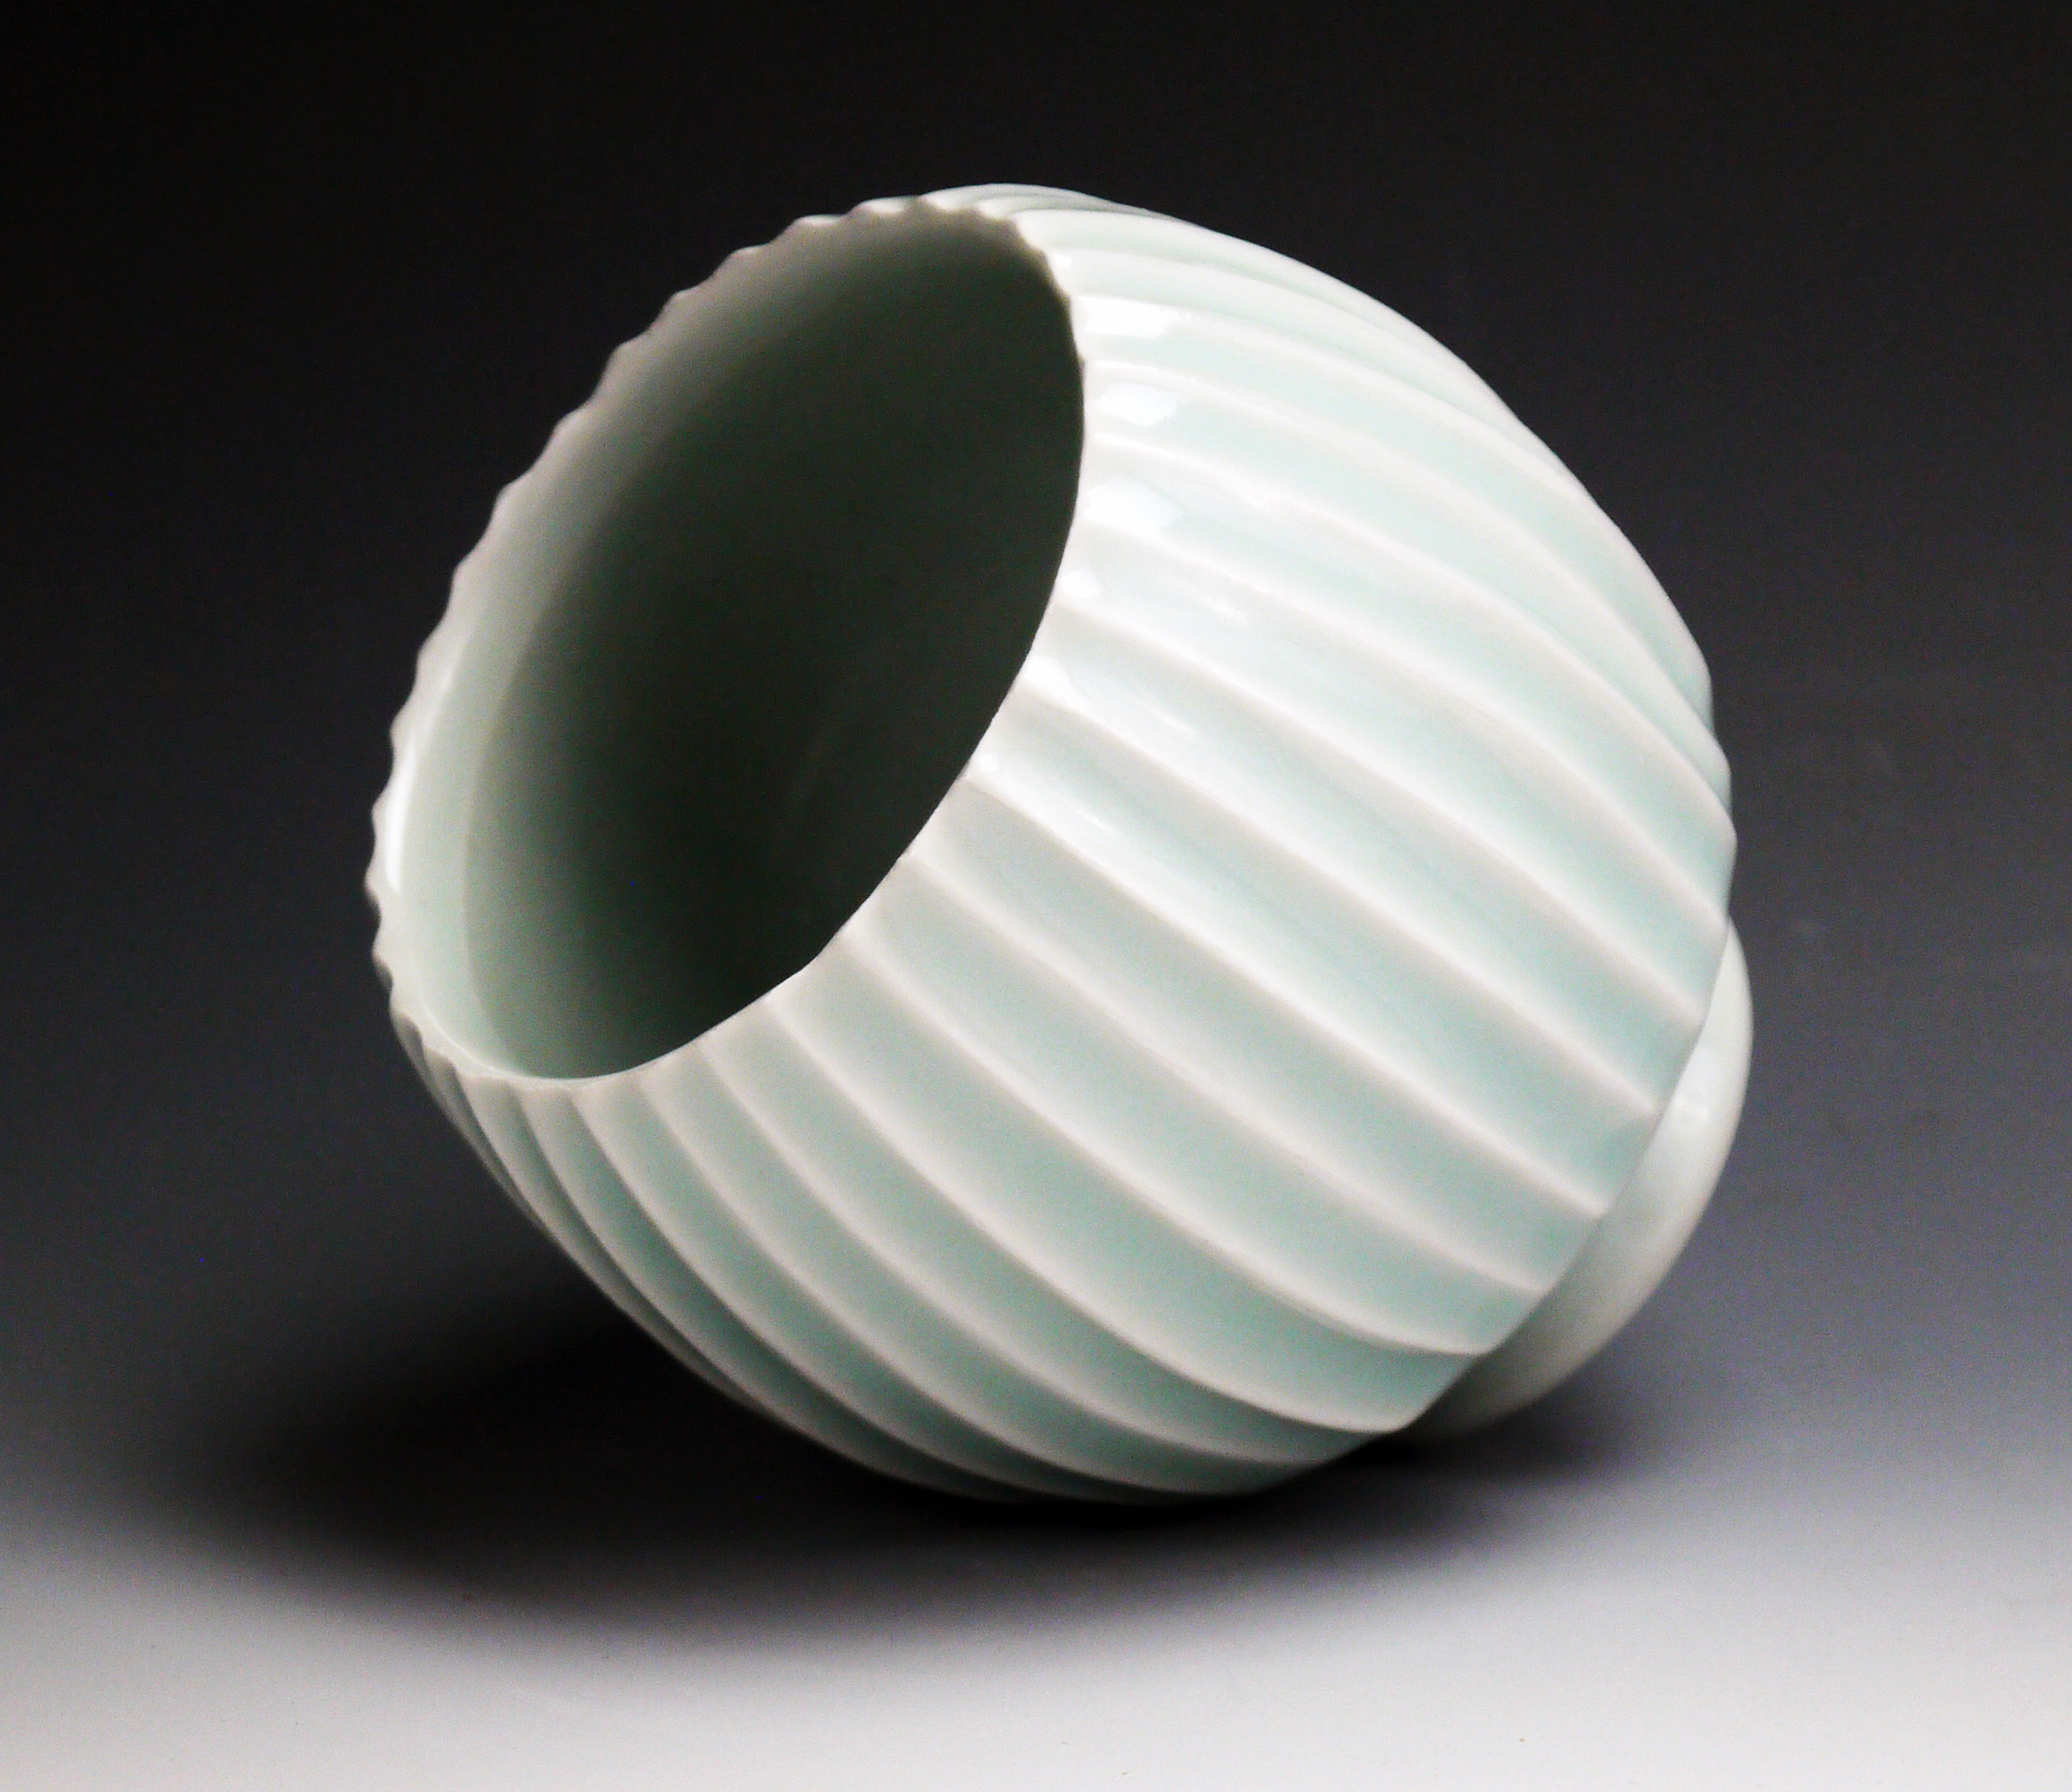 Quot Carved Celadon Cup Quot By Steven Young Lee Buy Online Or